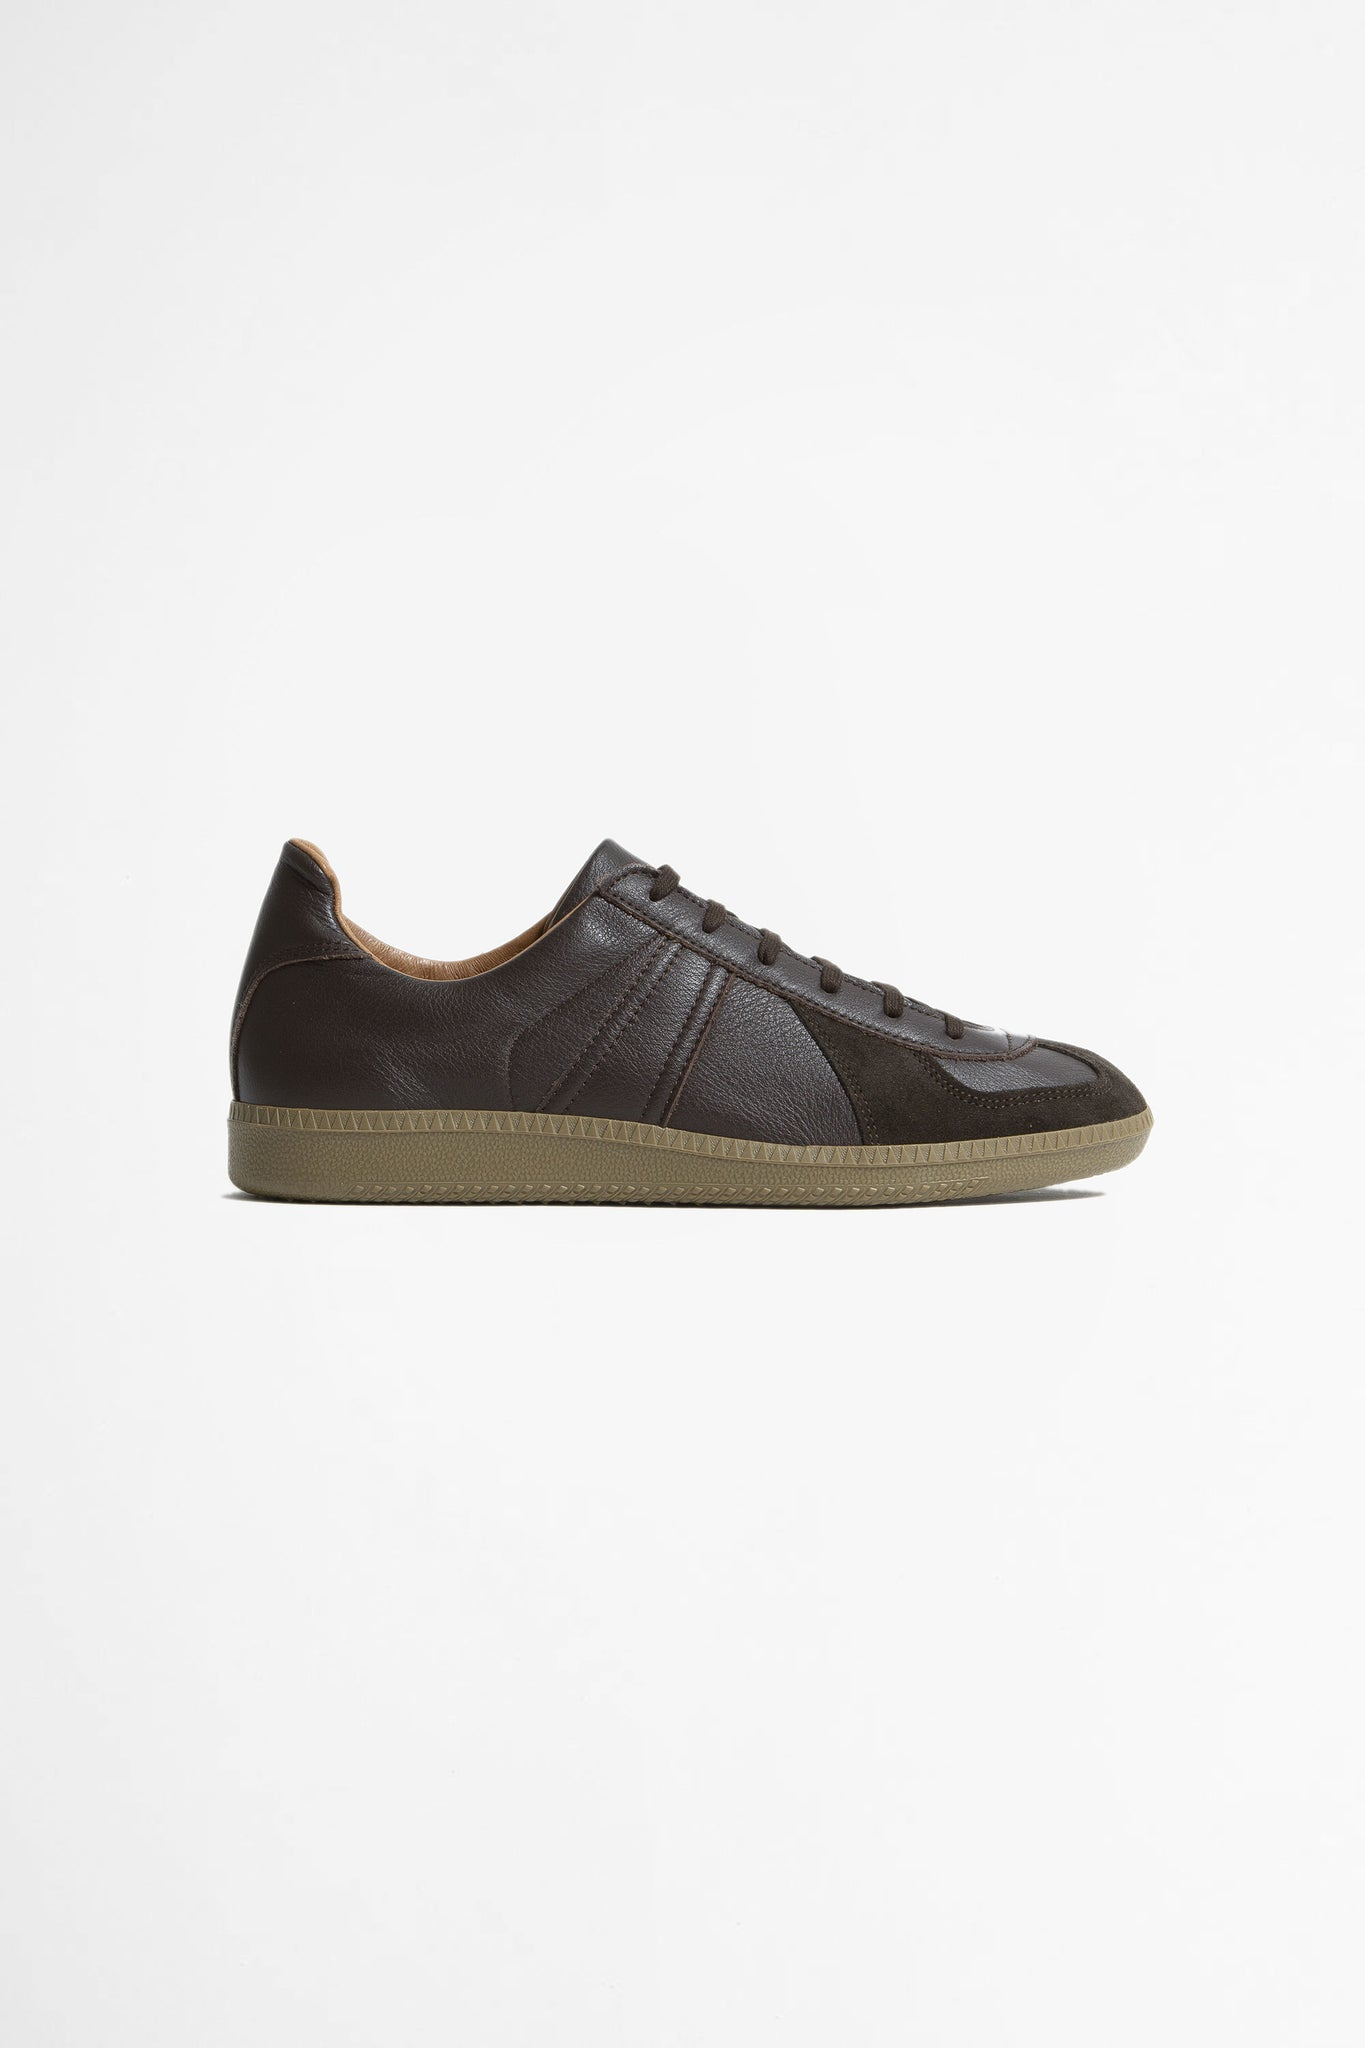 German military trainer dark brown